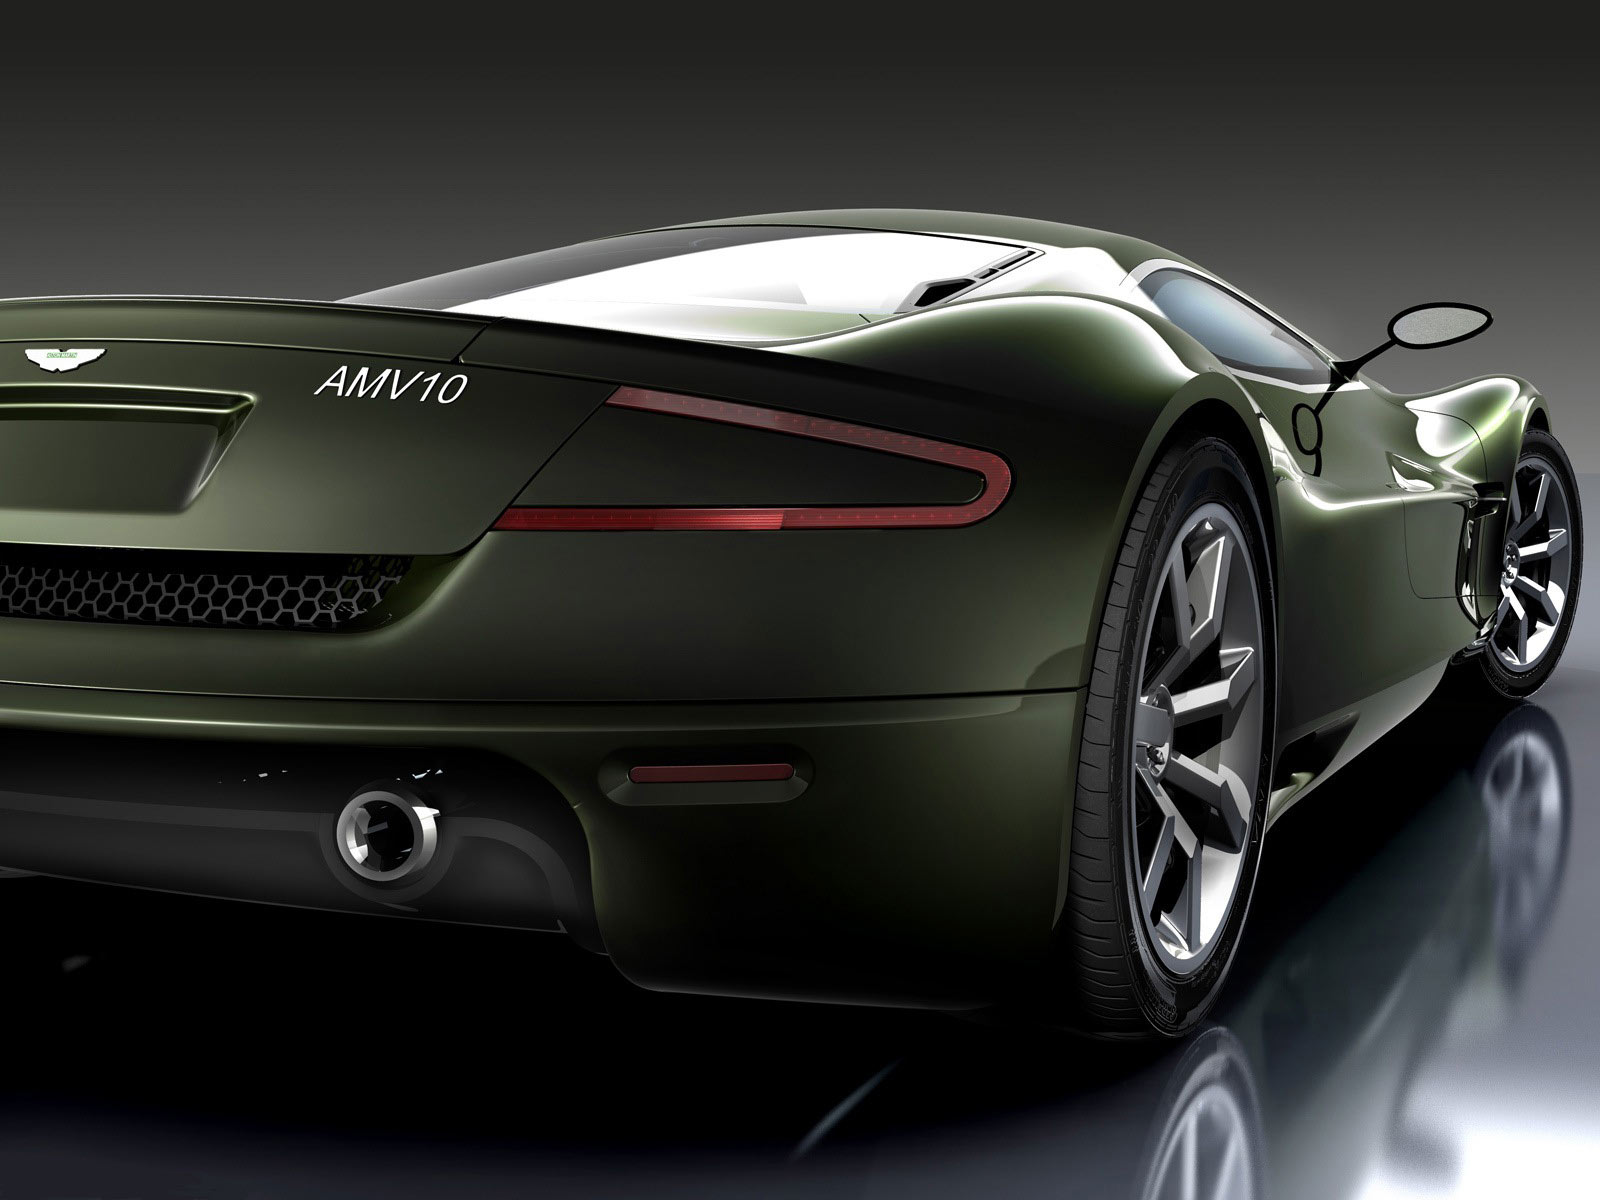 49 Speedy Car Wallpapers For Desktop Download 1600x1200